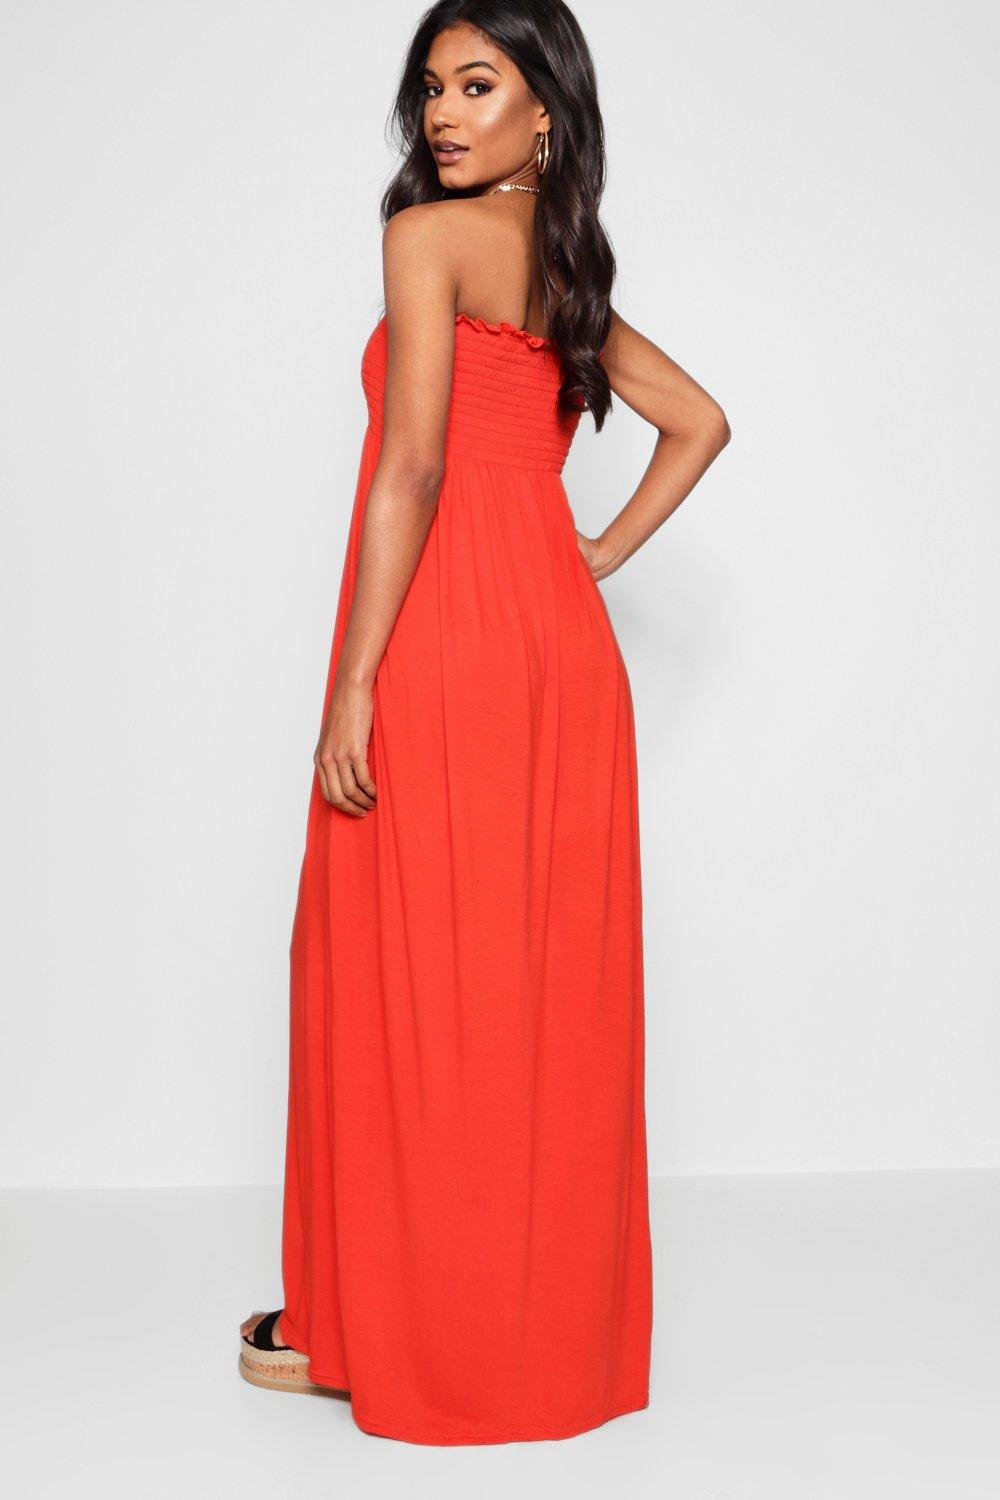 A lady wearing a red bandeau style maxi dress.